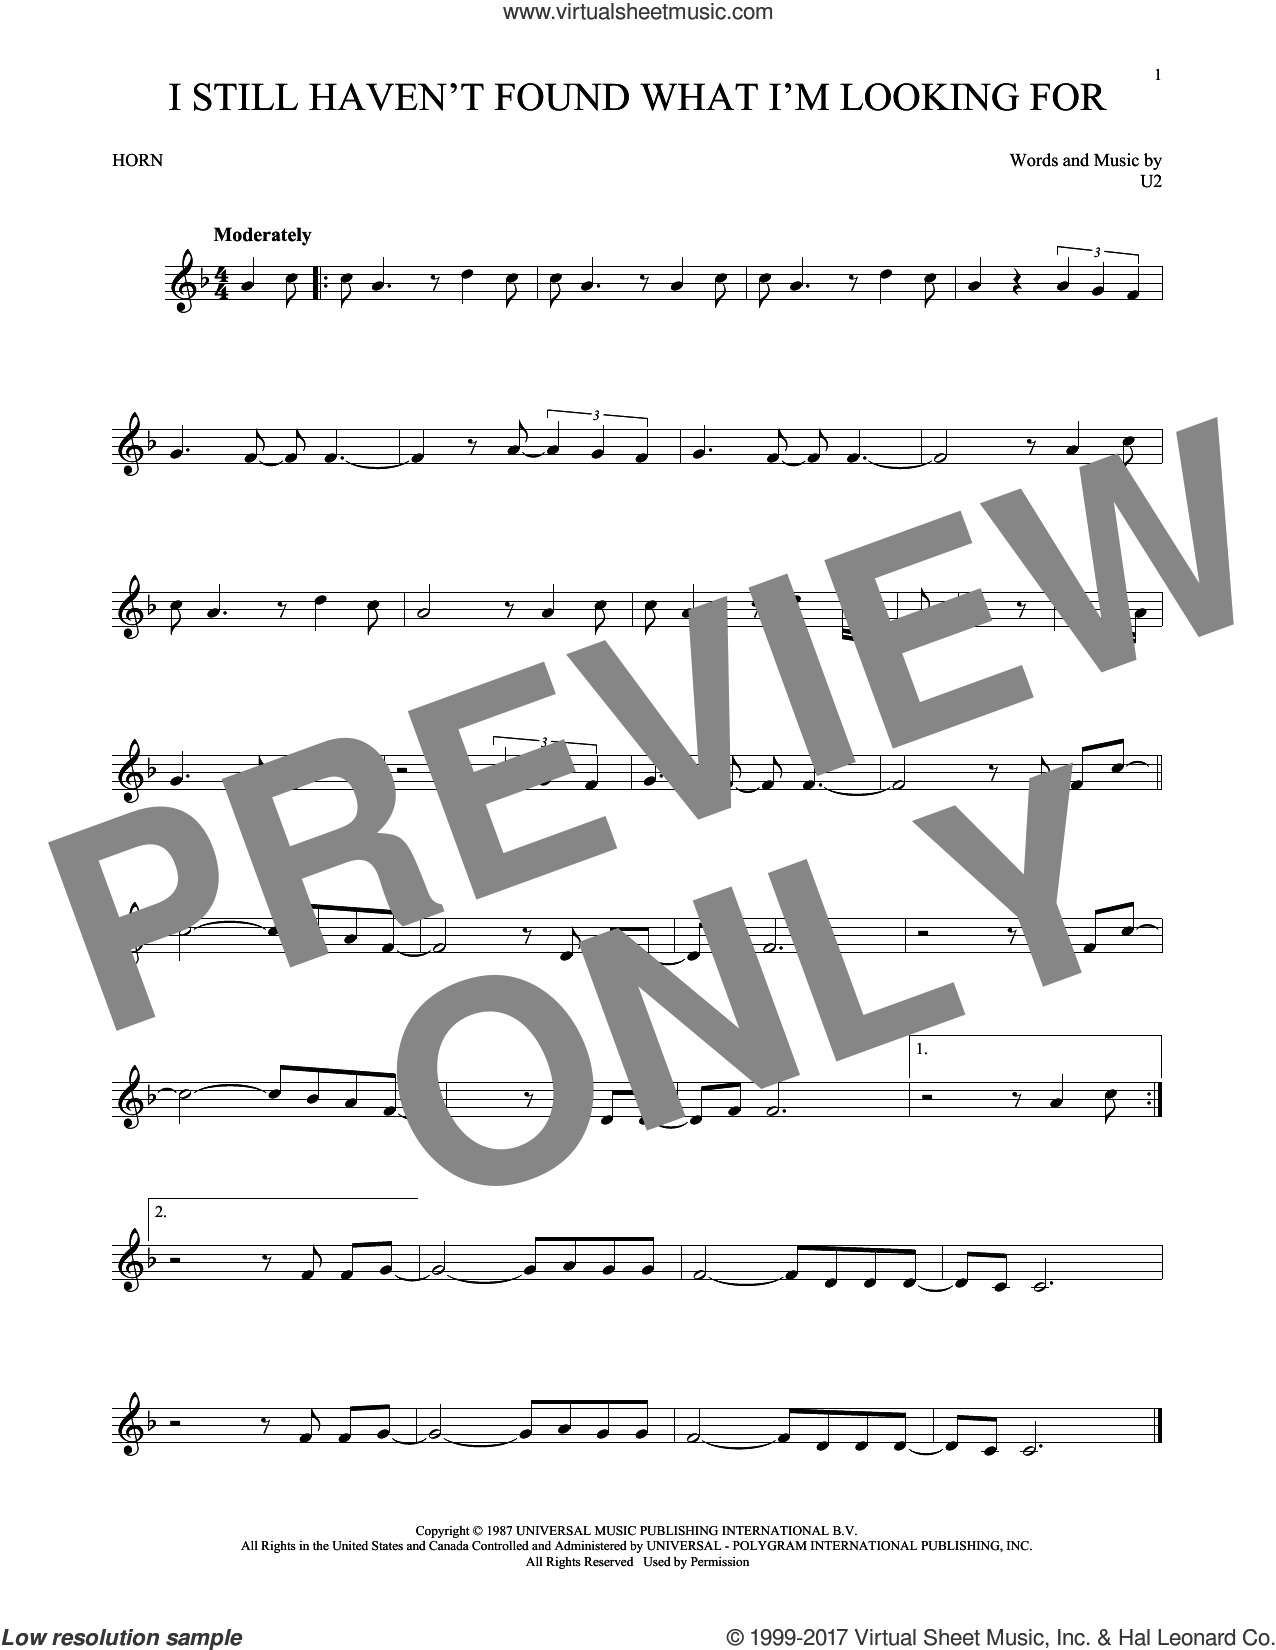 I Still Haven't Found What I'm Looking For sheet music for horn solo by U2. Score Image Preview.